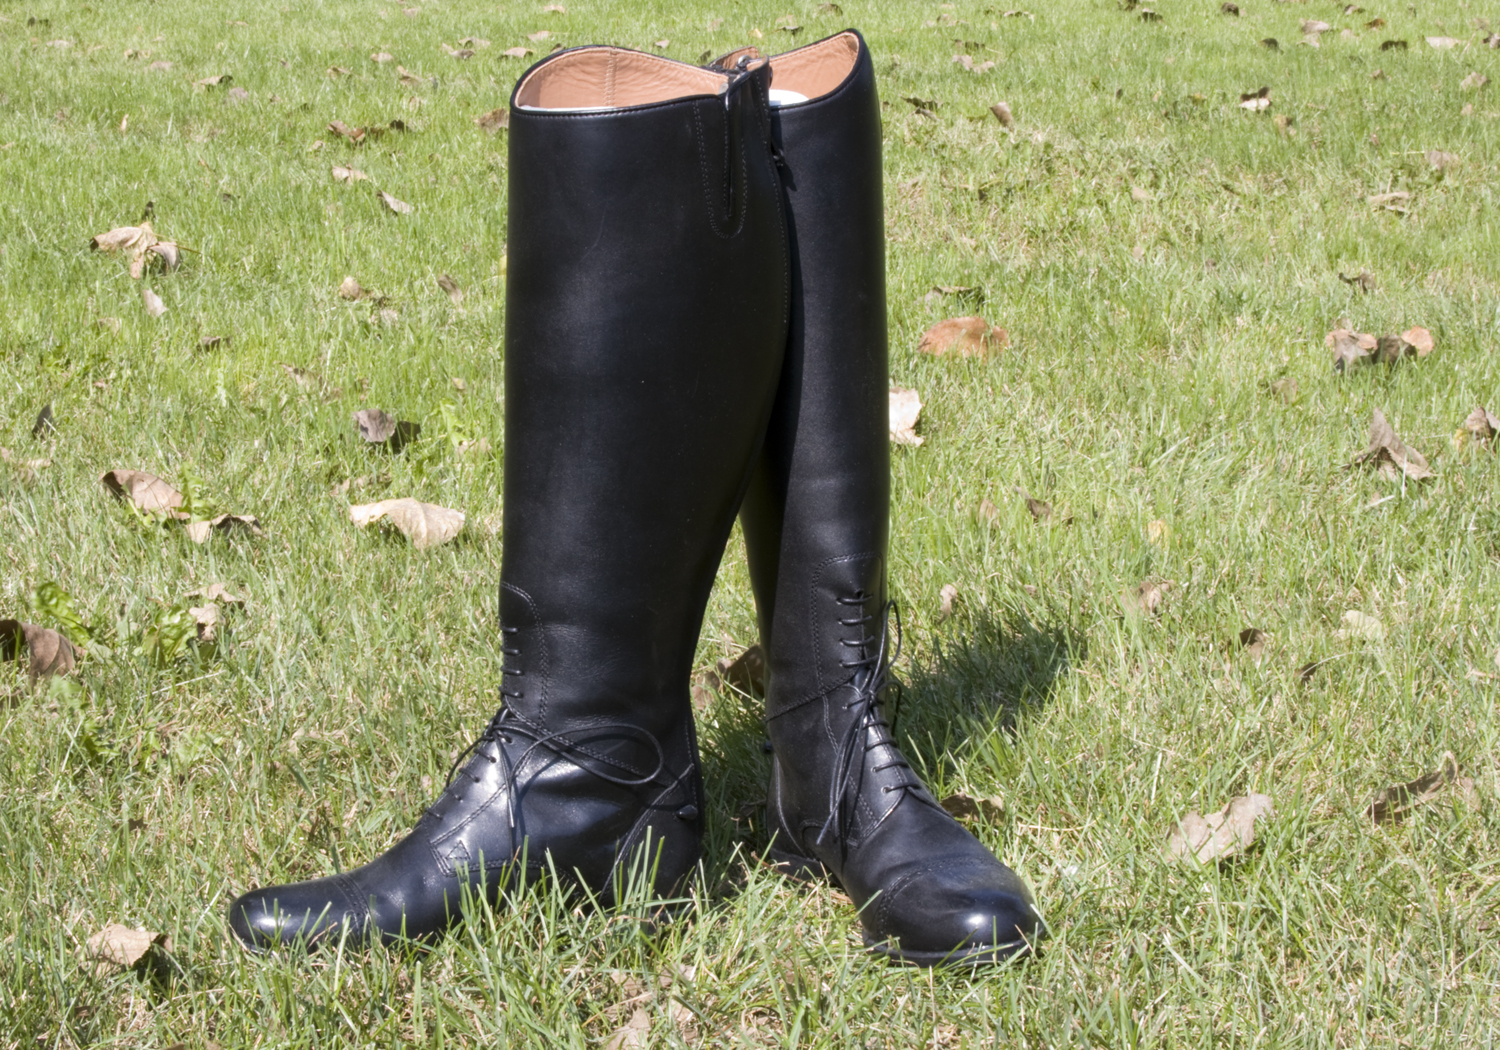 3bccafbeca26 Riding boot - Wikipedia